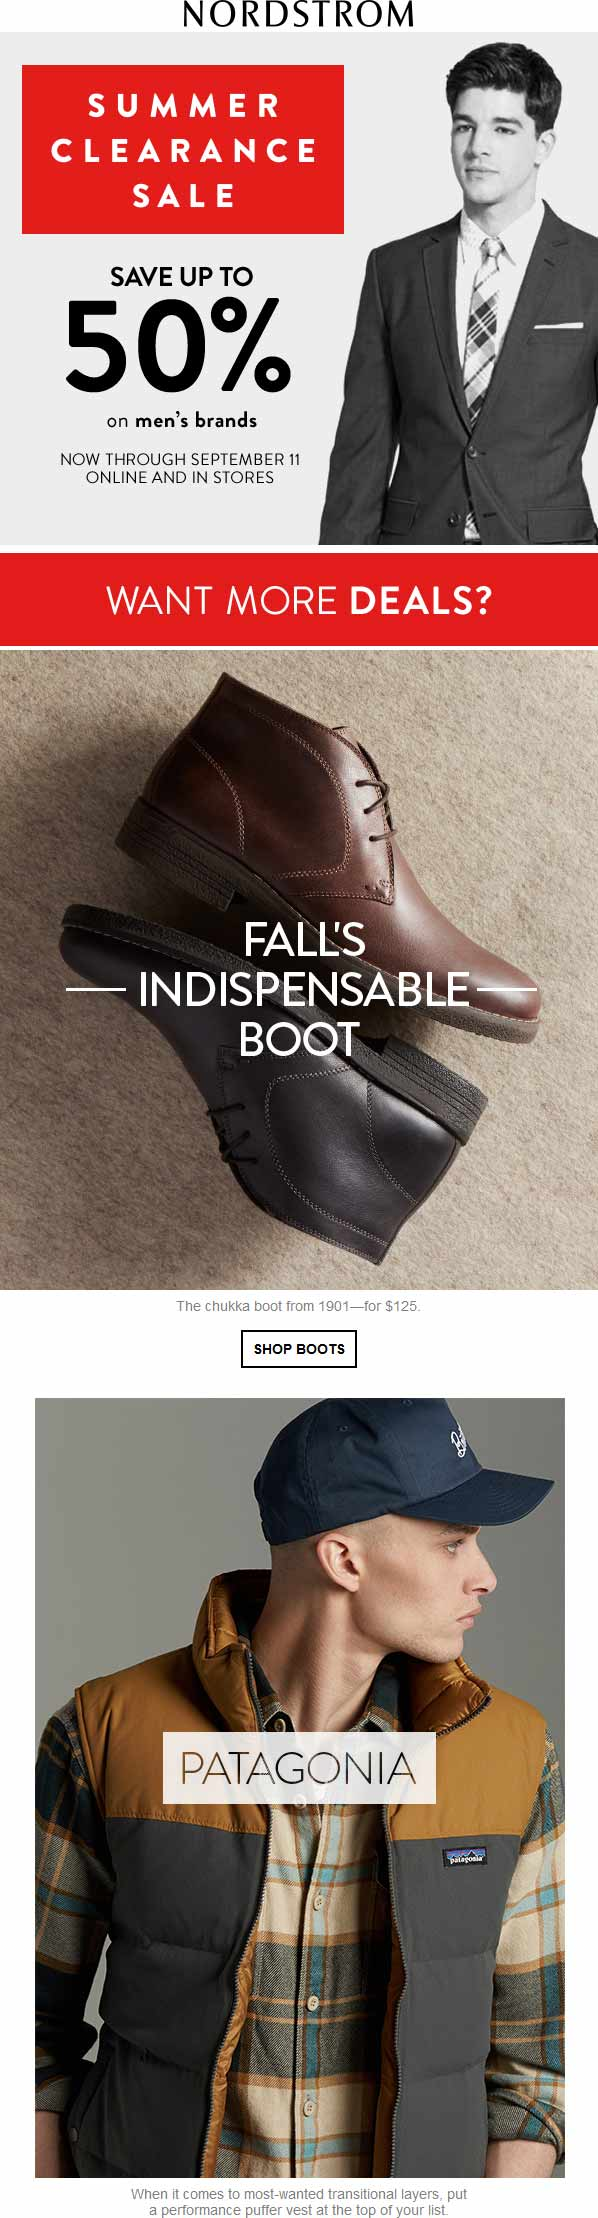 Nordstrom Coupon October 2016 Mens 50% clearance sale going on at Nordstrom, ditto online